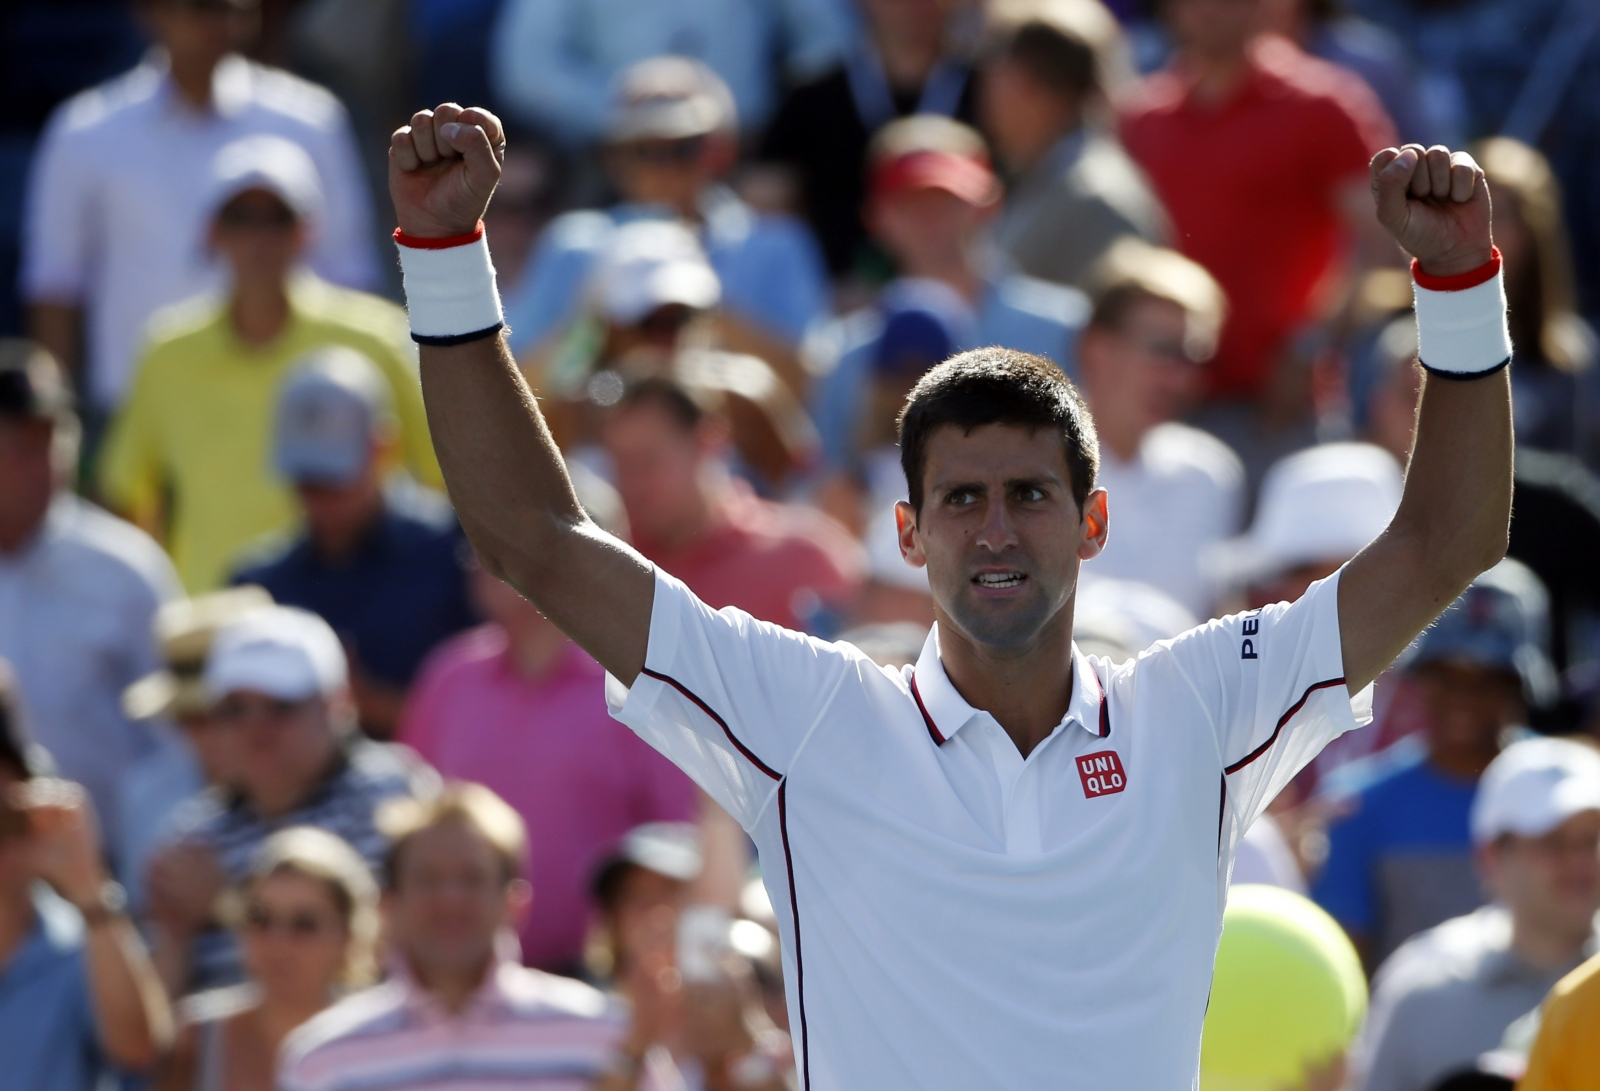 Novak Djokovic celebrating during US Open 2014